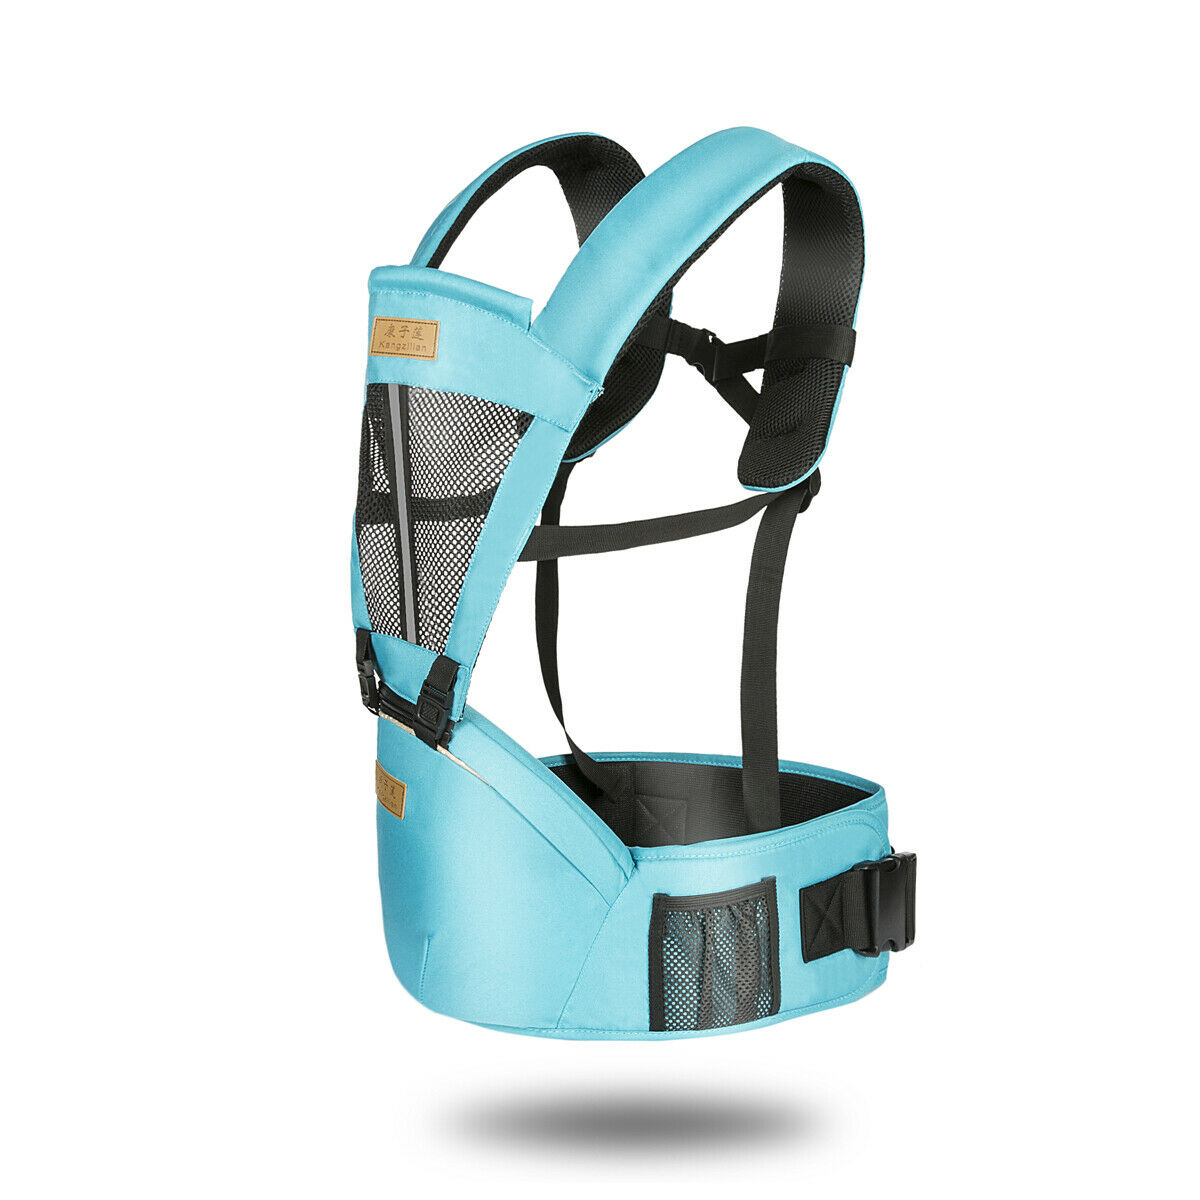 0-36 Months Baby Carrier Kangaroo Toddler Sling Wrap Portable Infant Hipseat Soft Breathable Adjustable Hip Seat Baby Wrap Sling